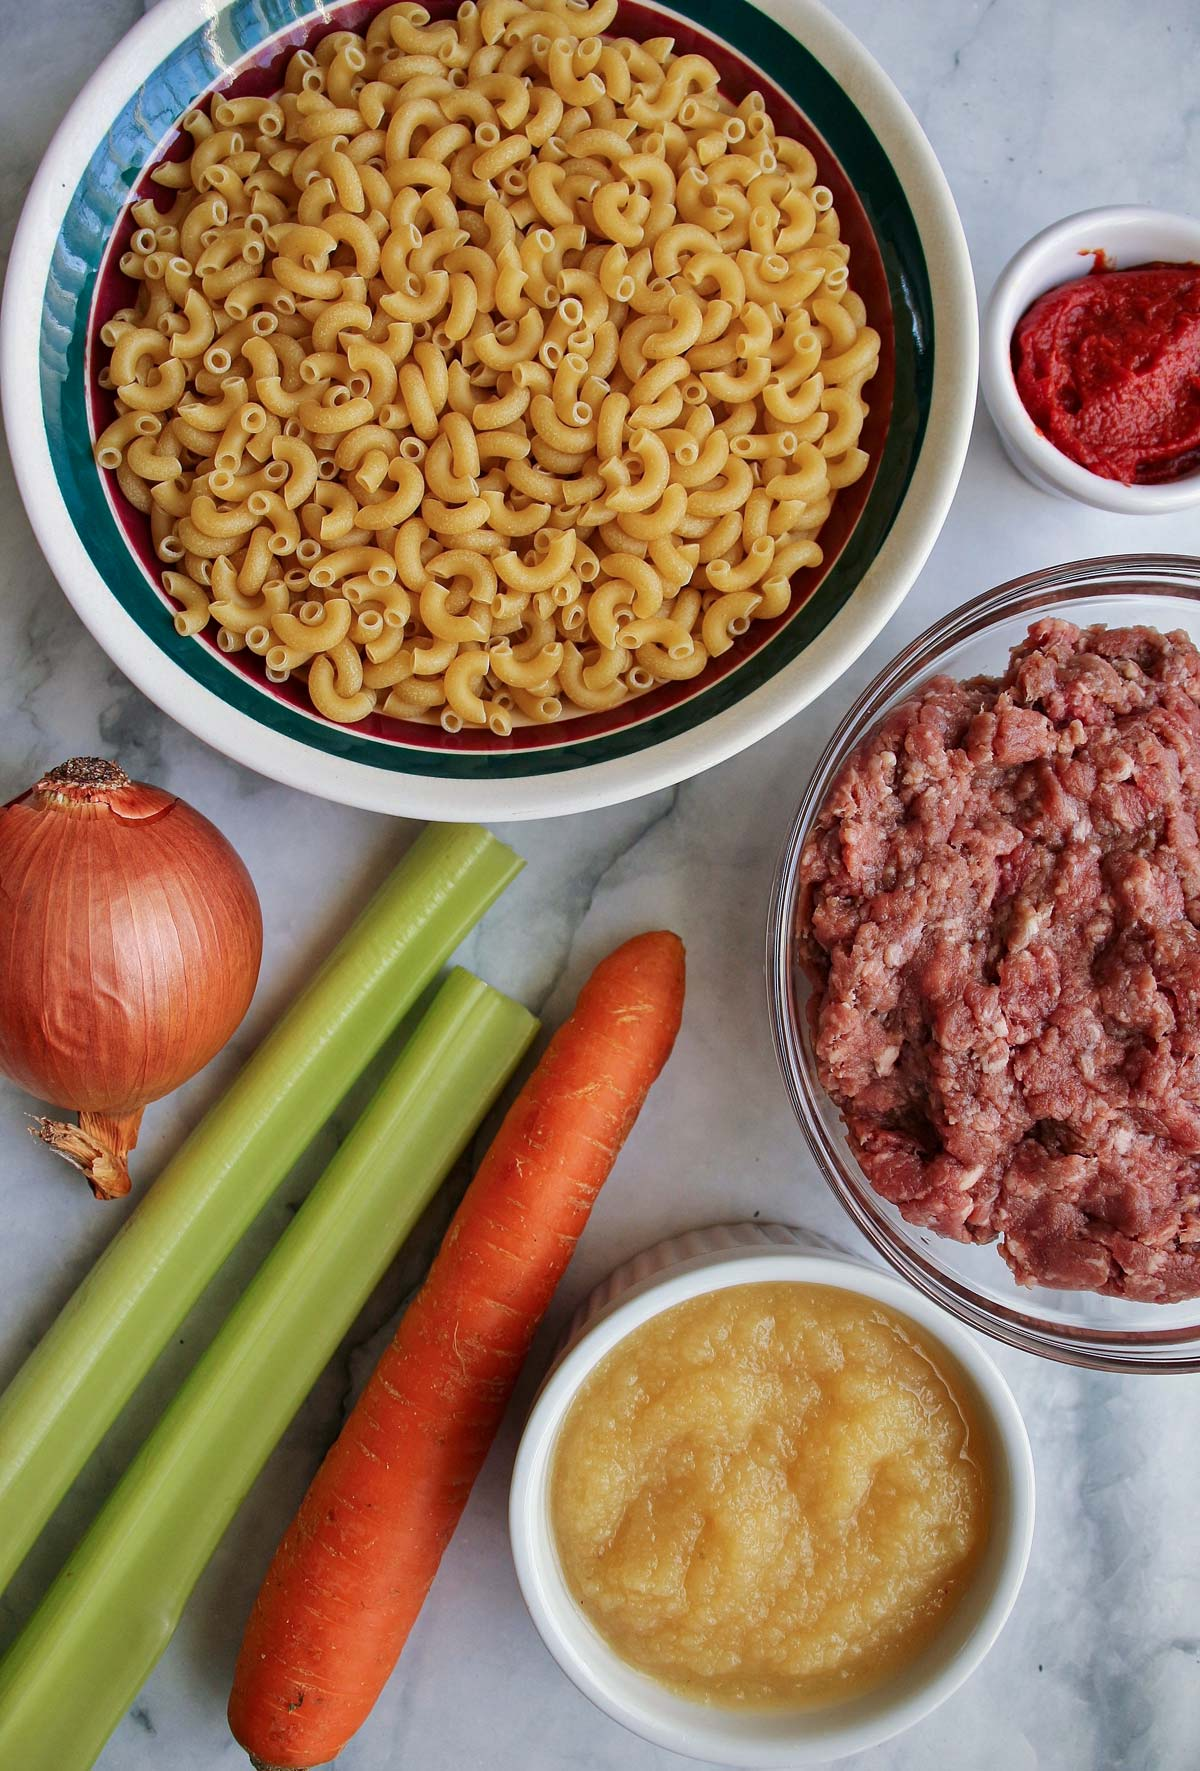 Elbow macaroni, an onion, celery, carrot, applesauce, ground beef, and tomato paste.